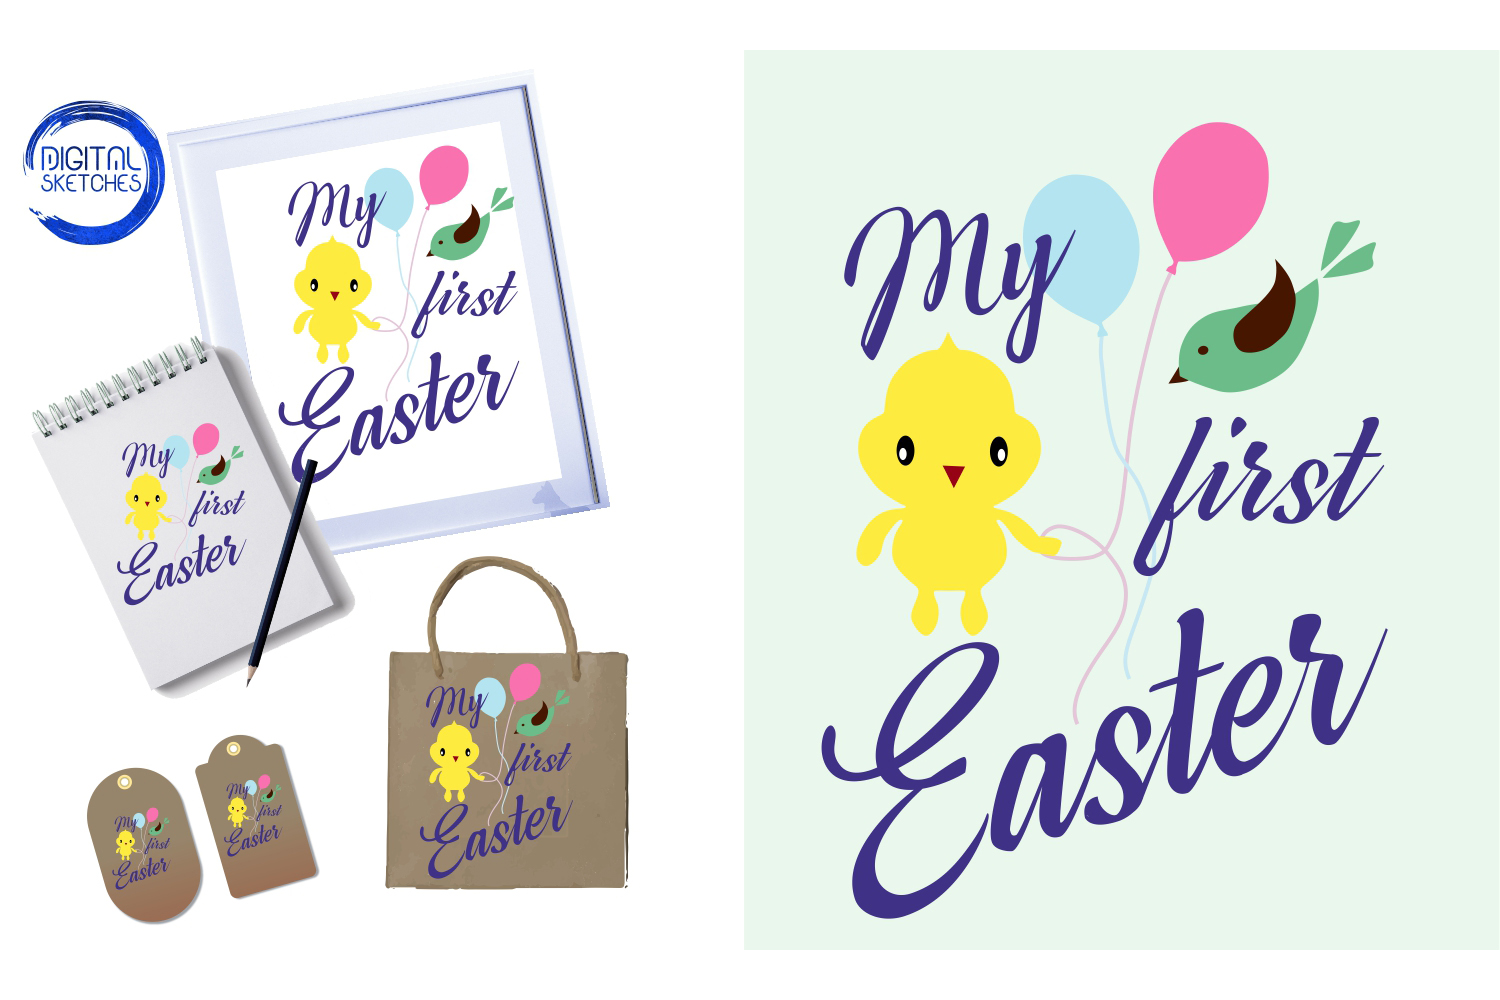 My First Easter Cut File Vector Graphics Illustration example image 1